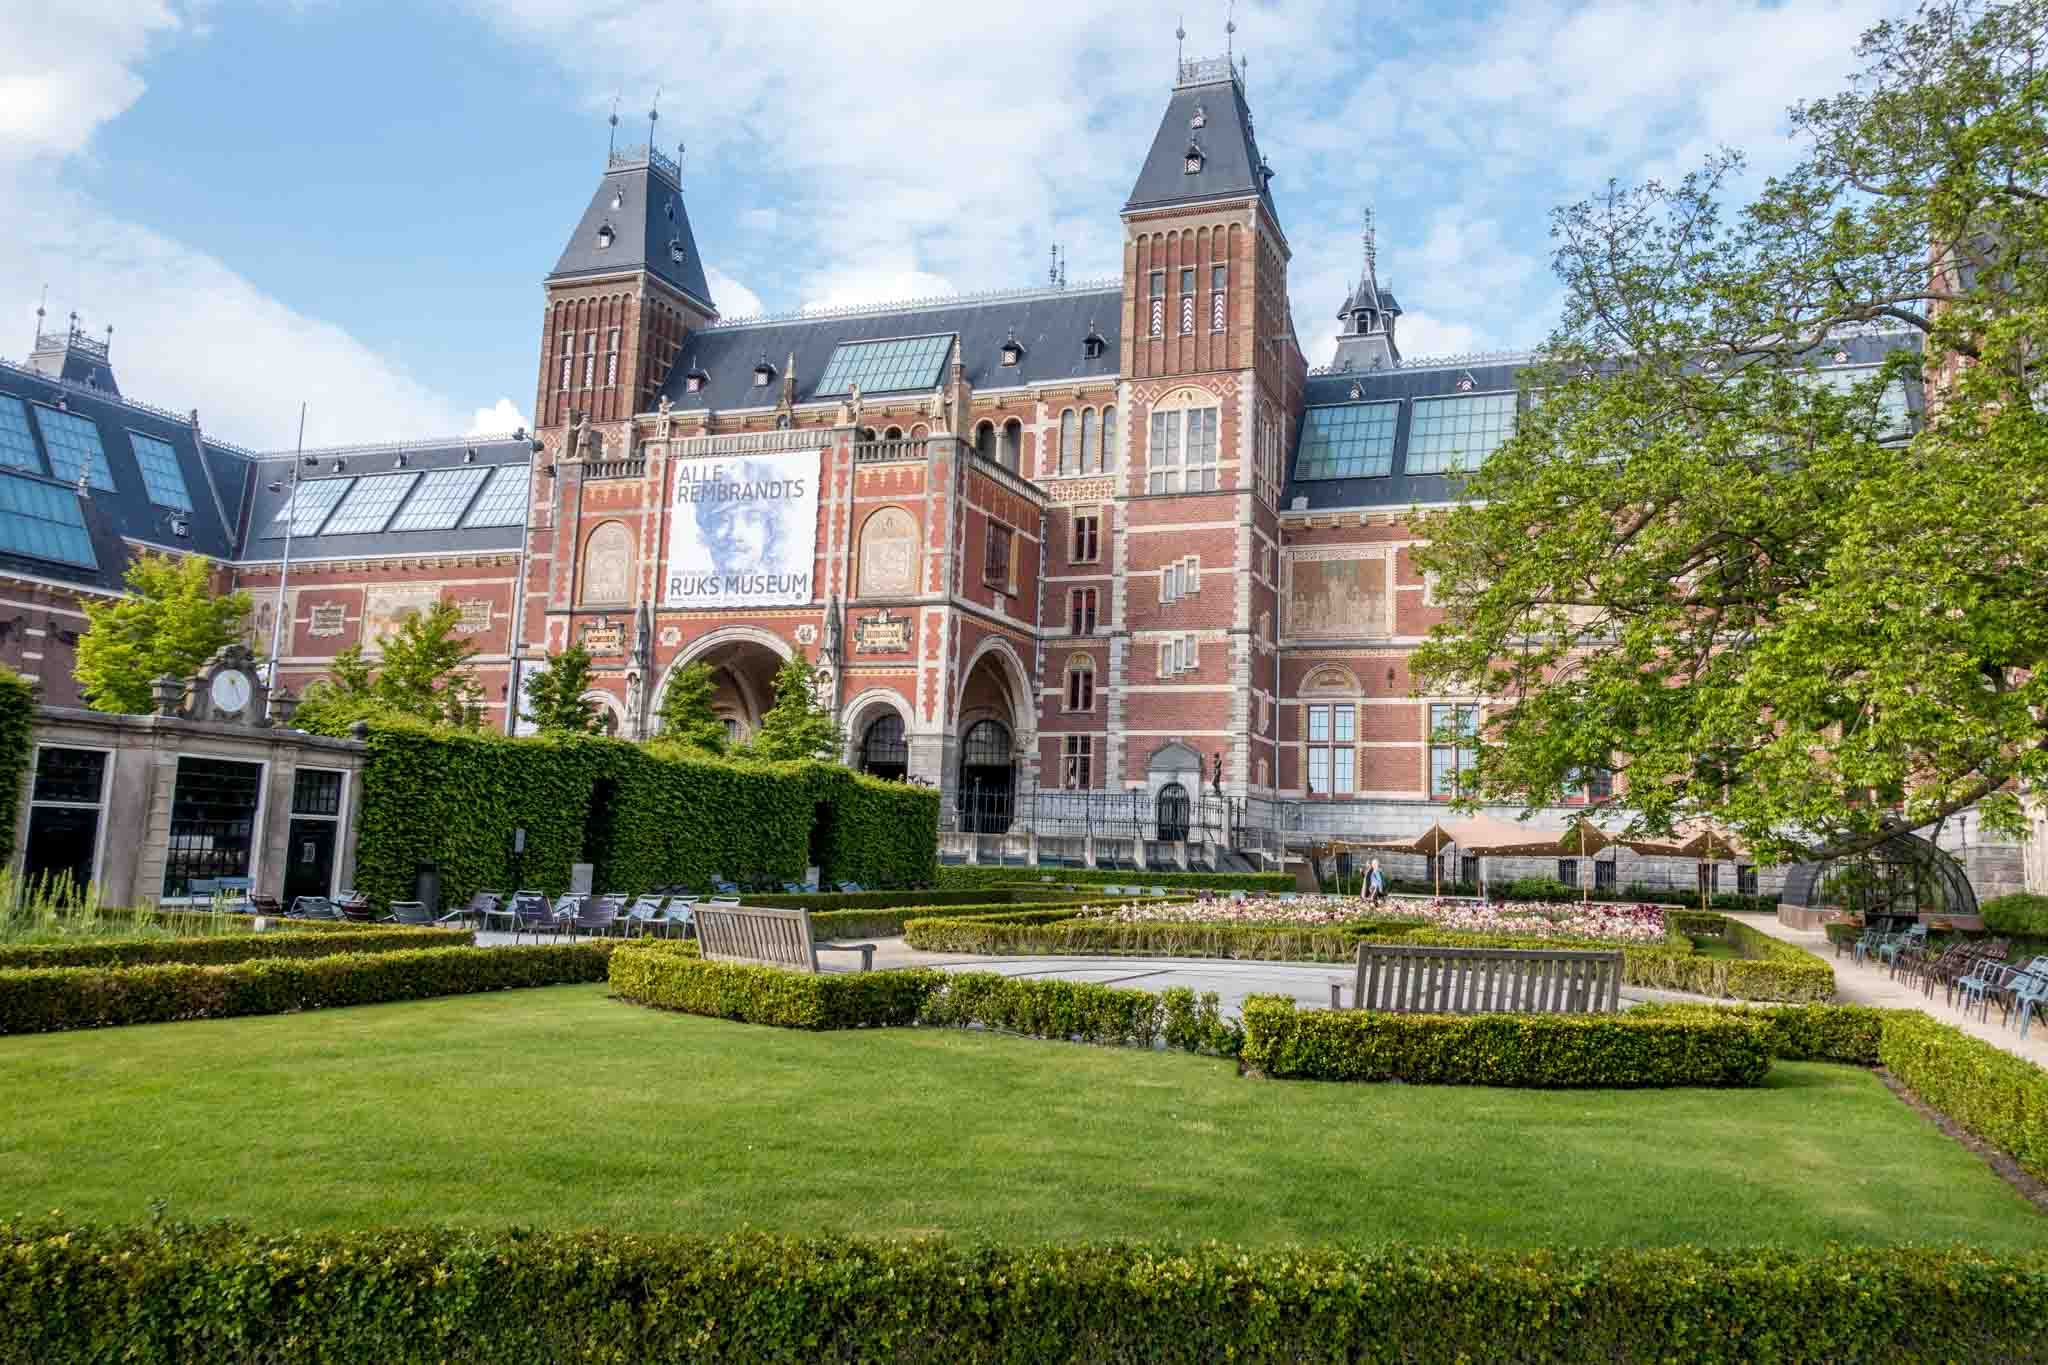 Rijksmuseum is one of the Amsterdam top attractions